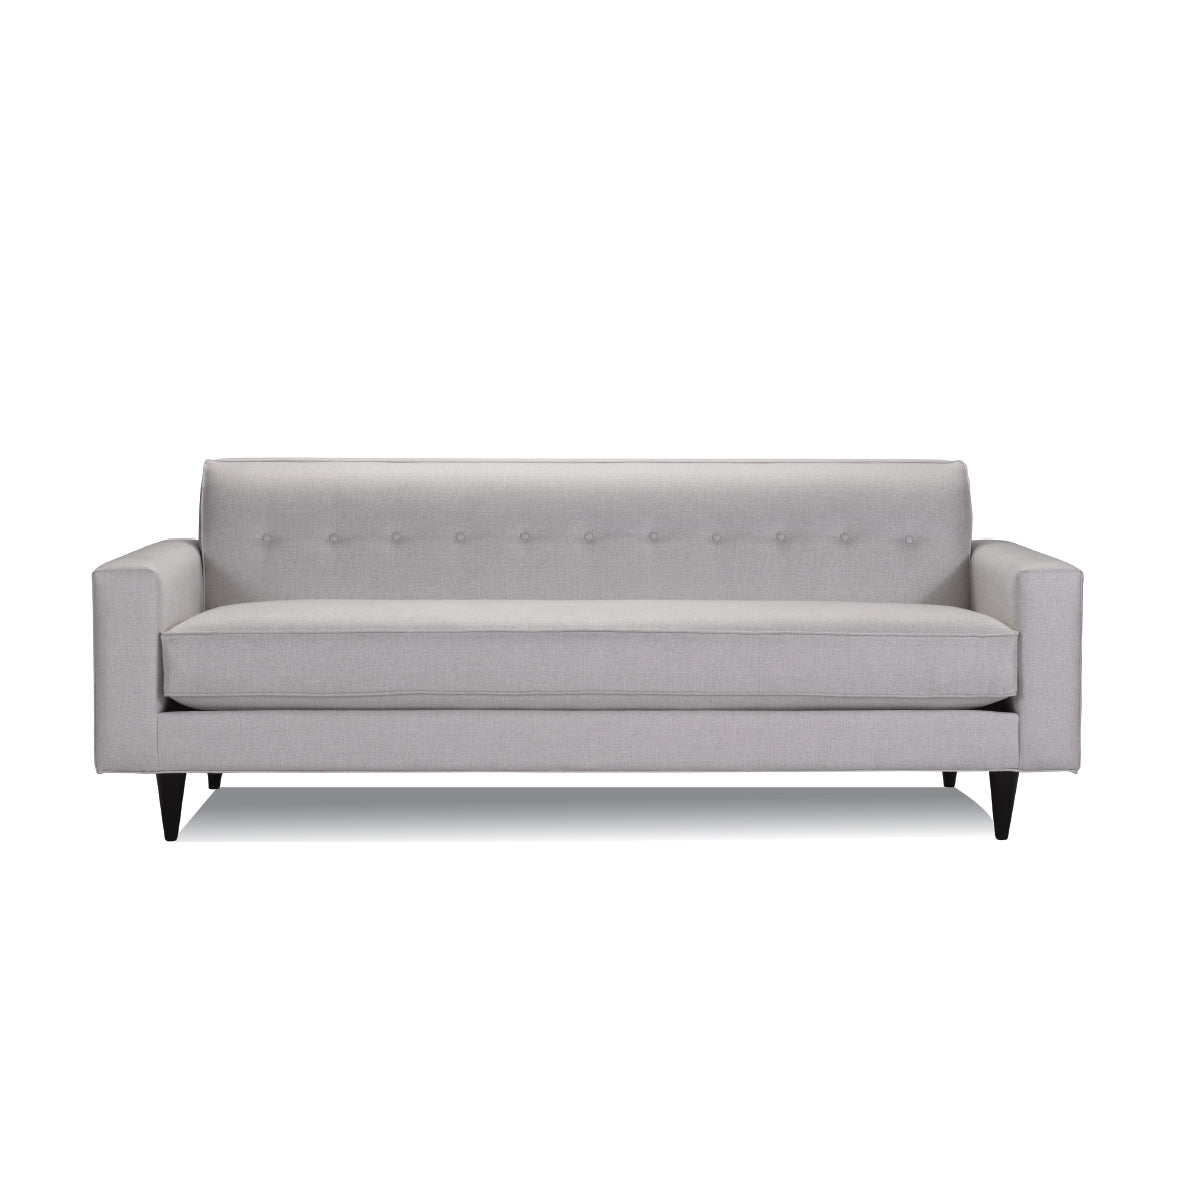 "Michael 75"" Apartment Sofa - Orla Ivory - IN STOCK"